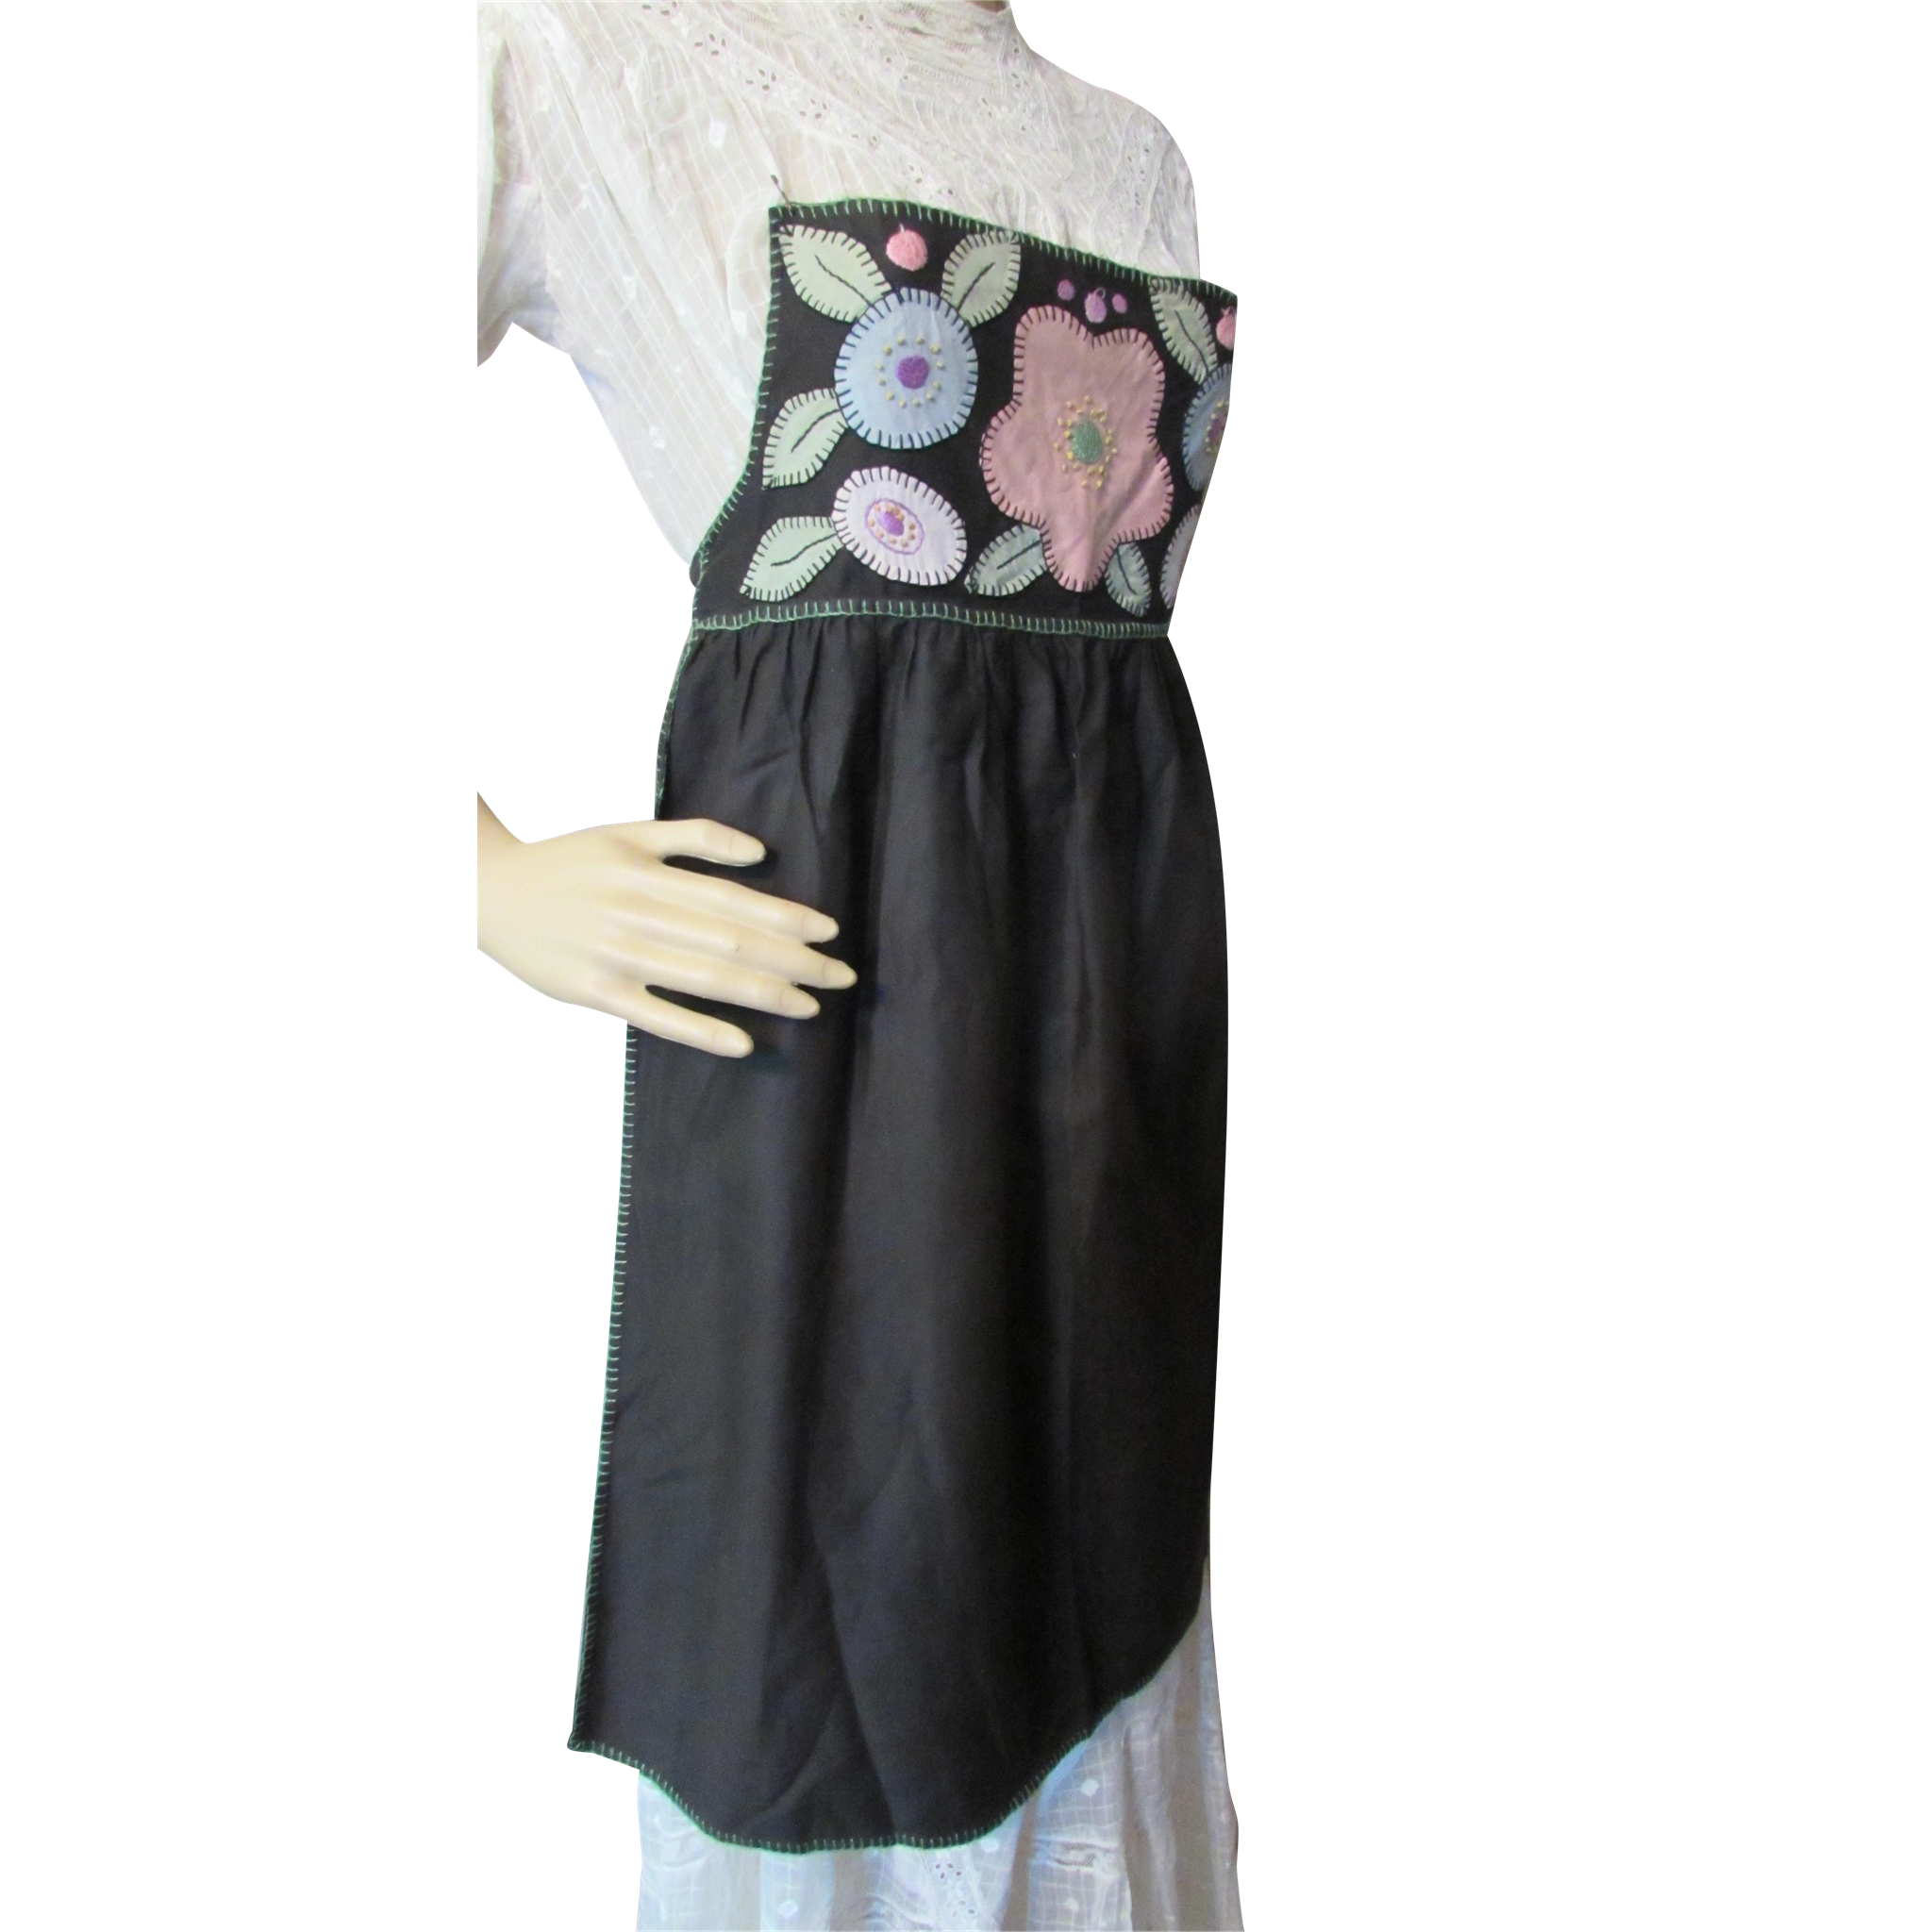 Cottage Style Farmhouse Style Full Apron Hand Made in Black Cotton with Embroidered Stylized Flower Applique Bib